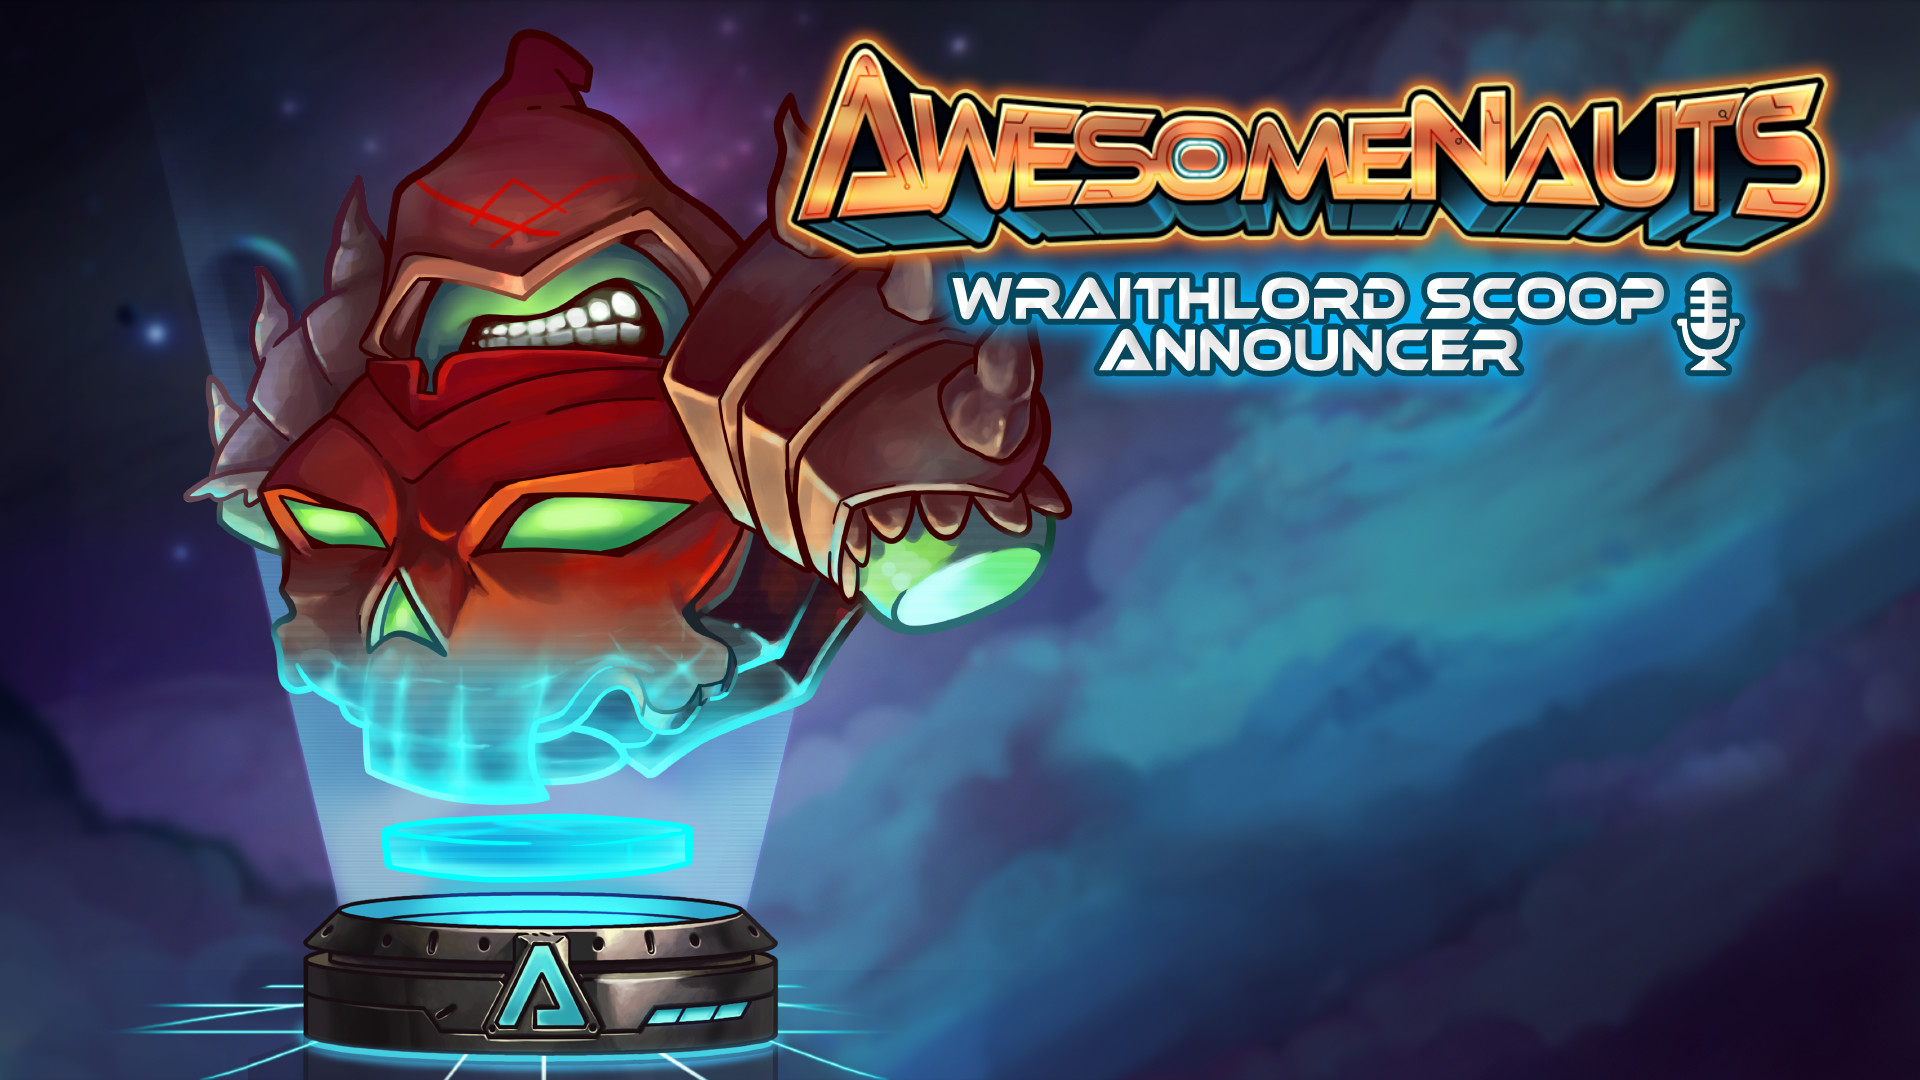 Awesomenauts - Wraithlord Scoop Announcer screenshot